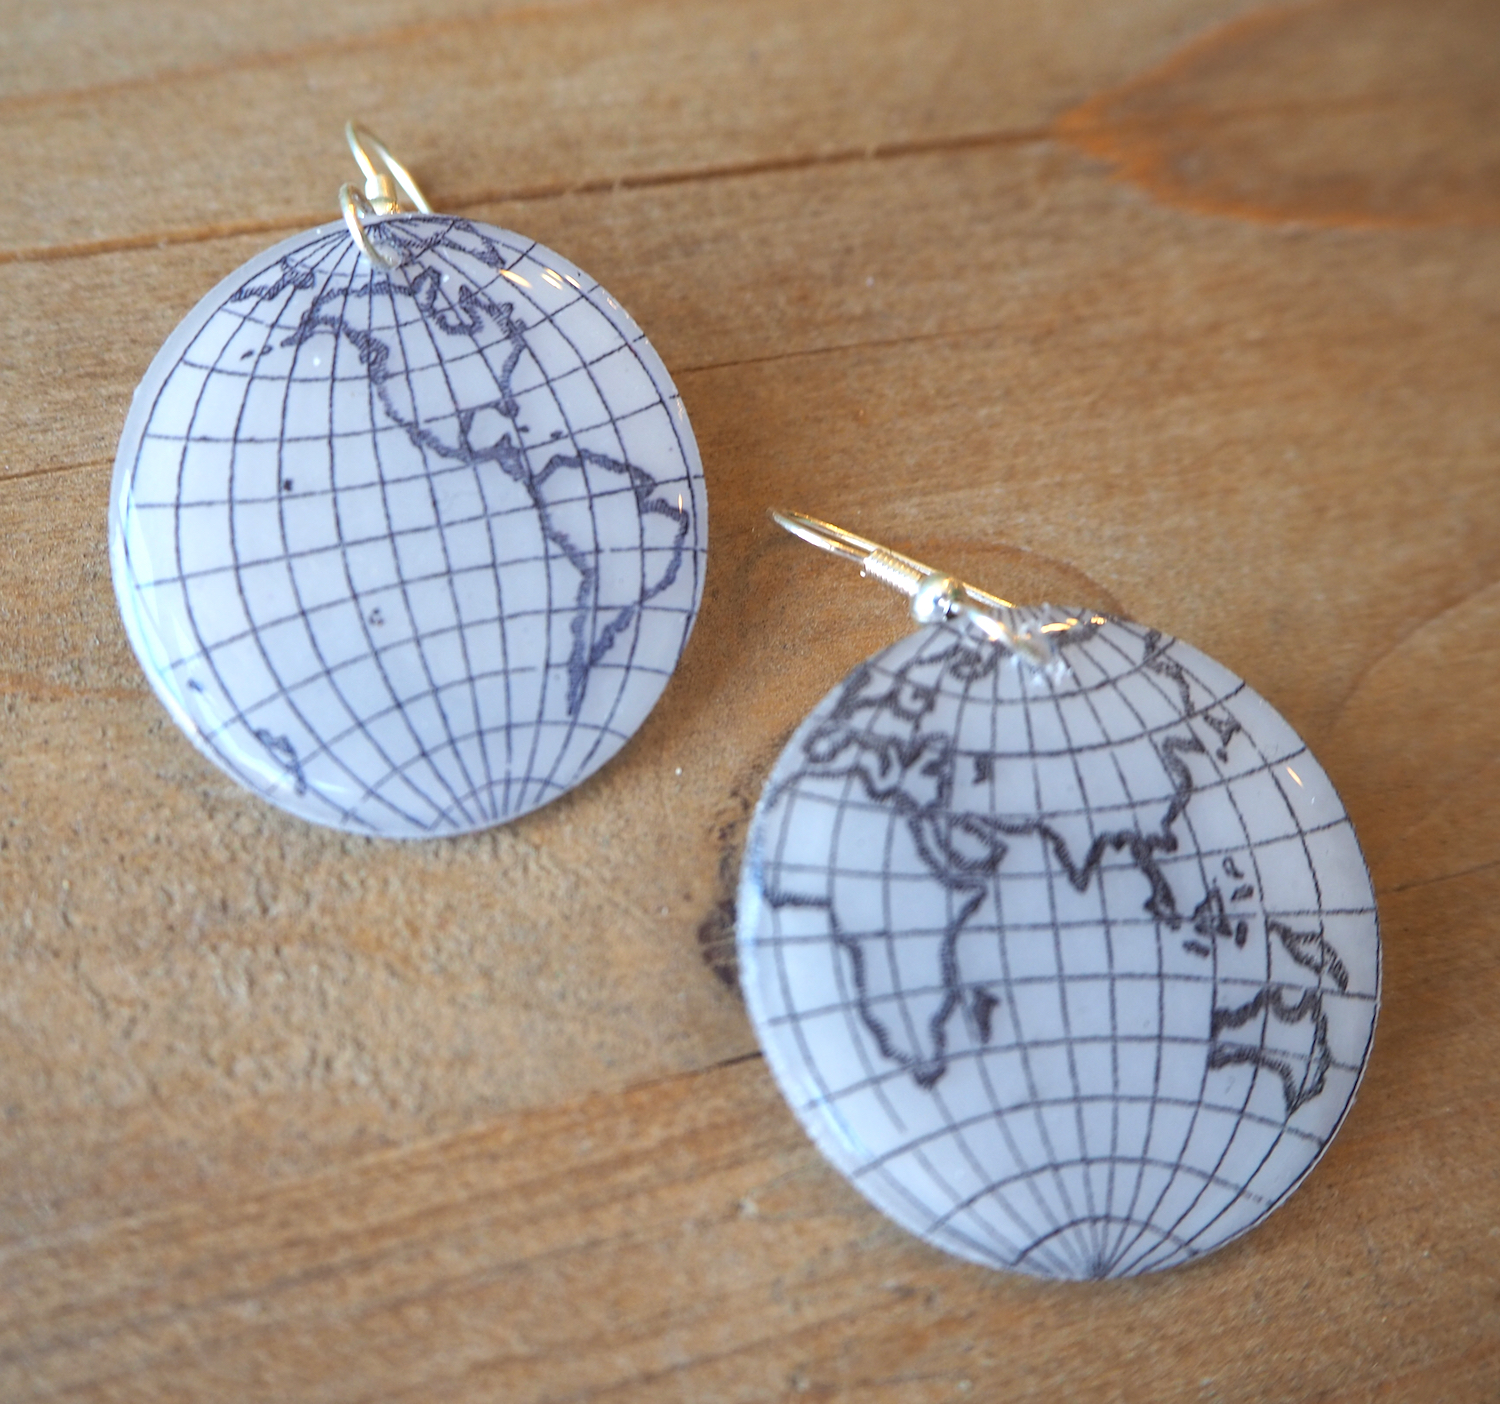 Beijo Brasil globe trotter earrings